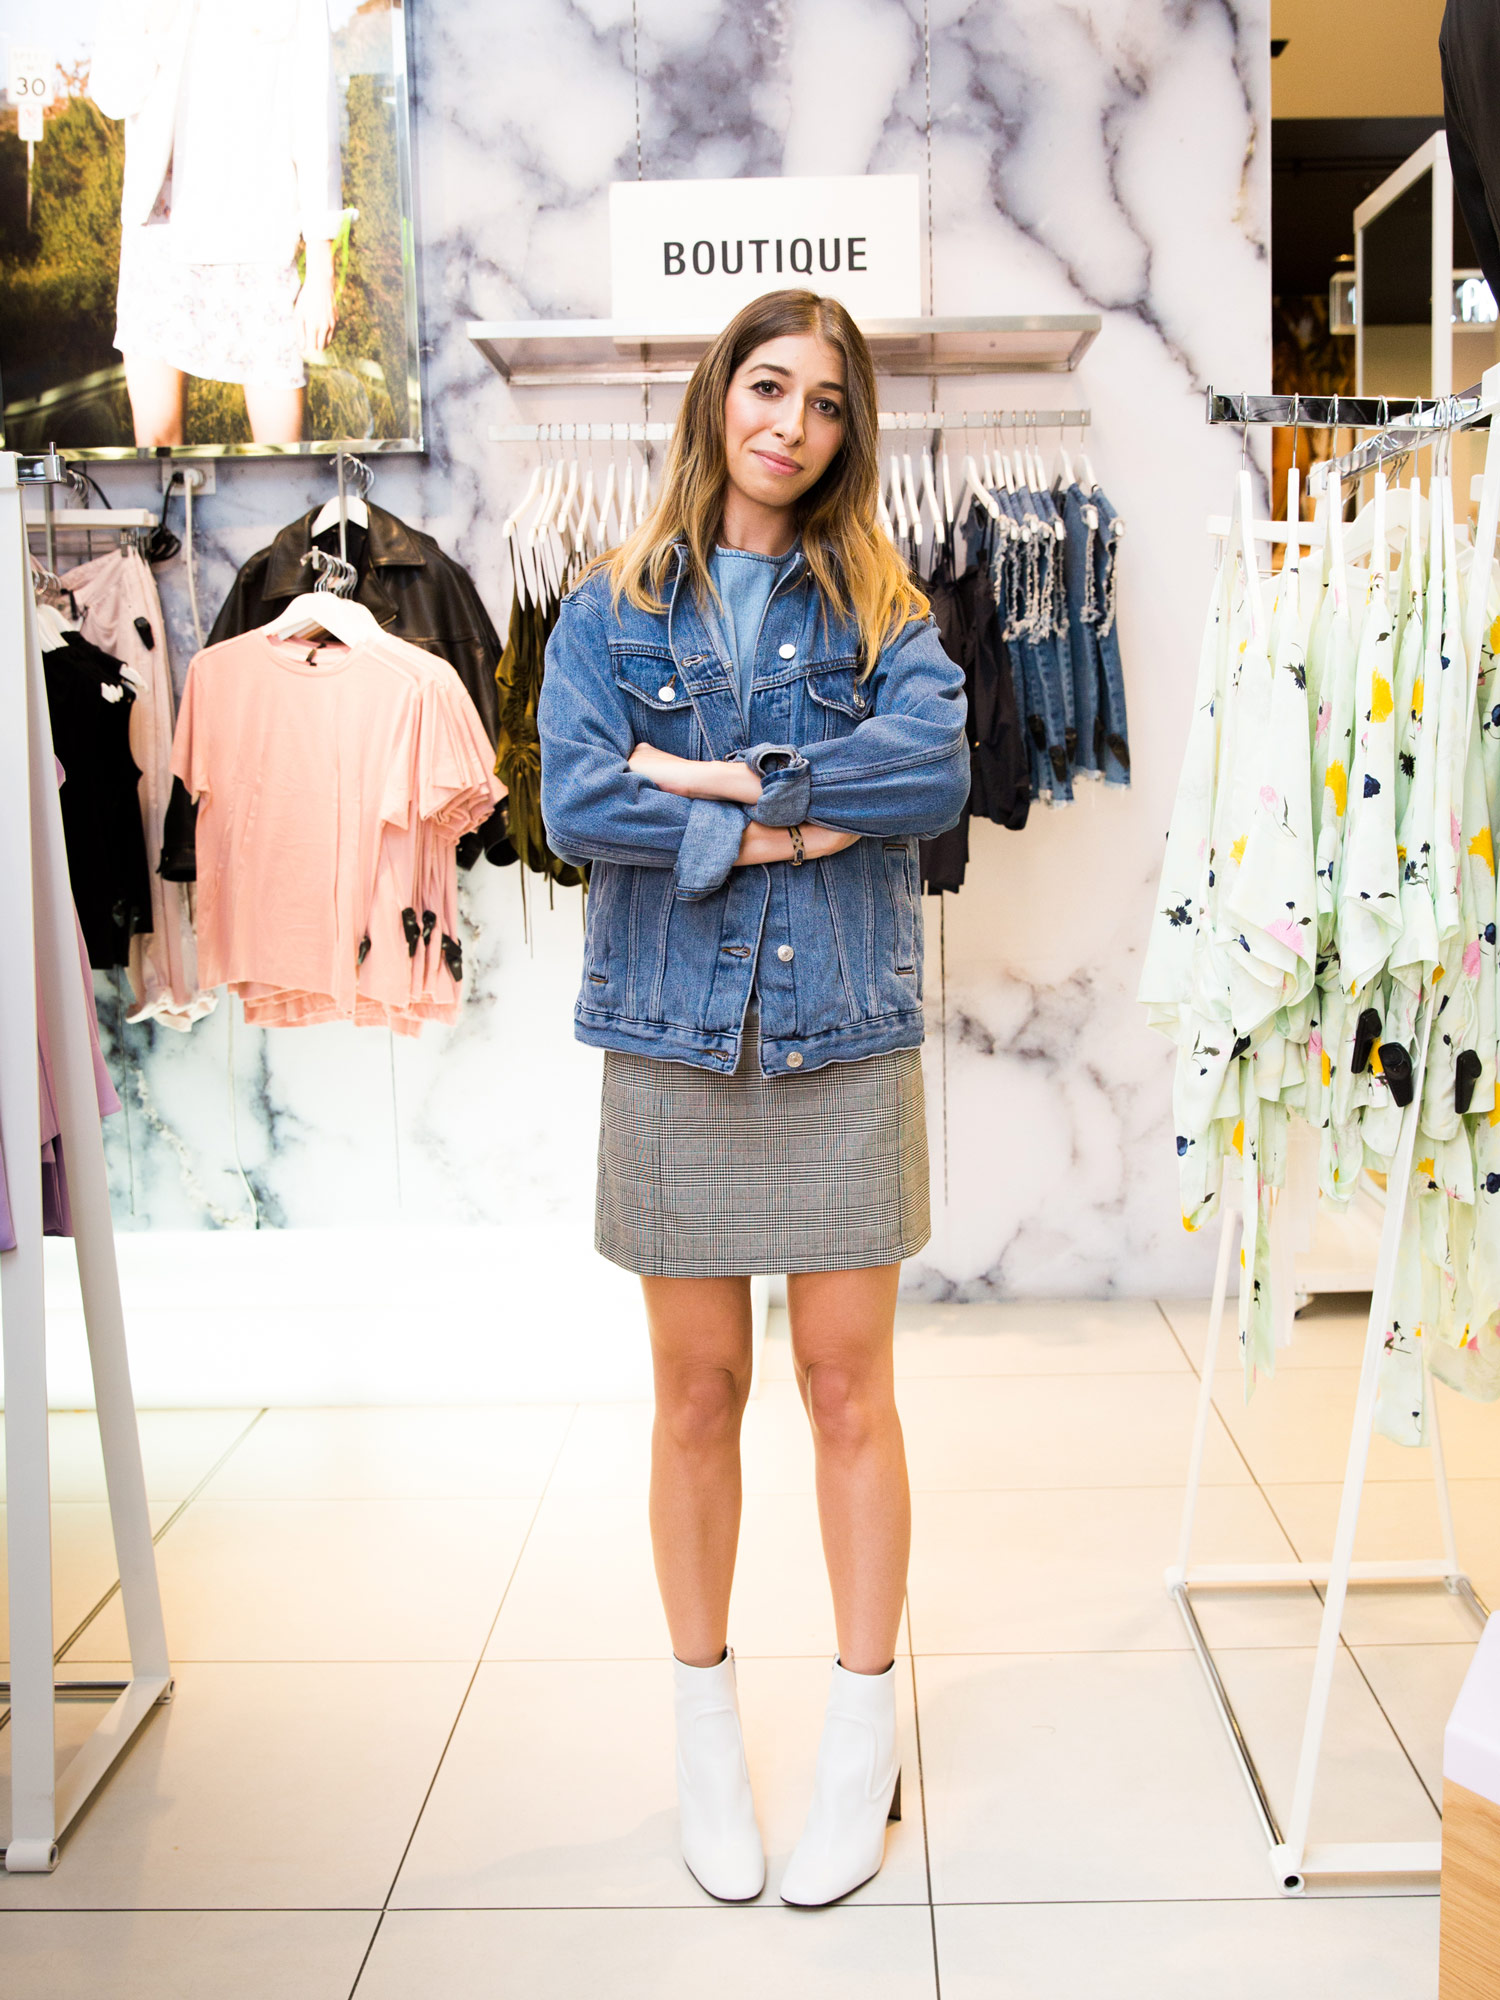 232a0d57e2227 Stephanie Mark Used Topshop Personal Shopping Service for New Denim -  Coveteur